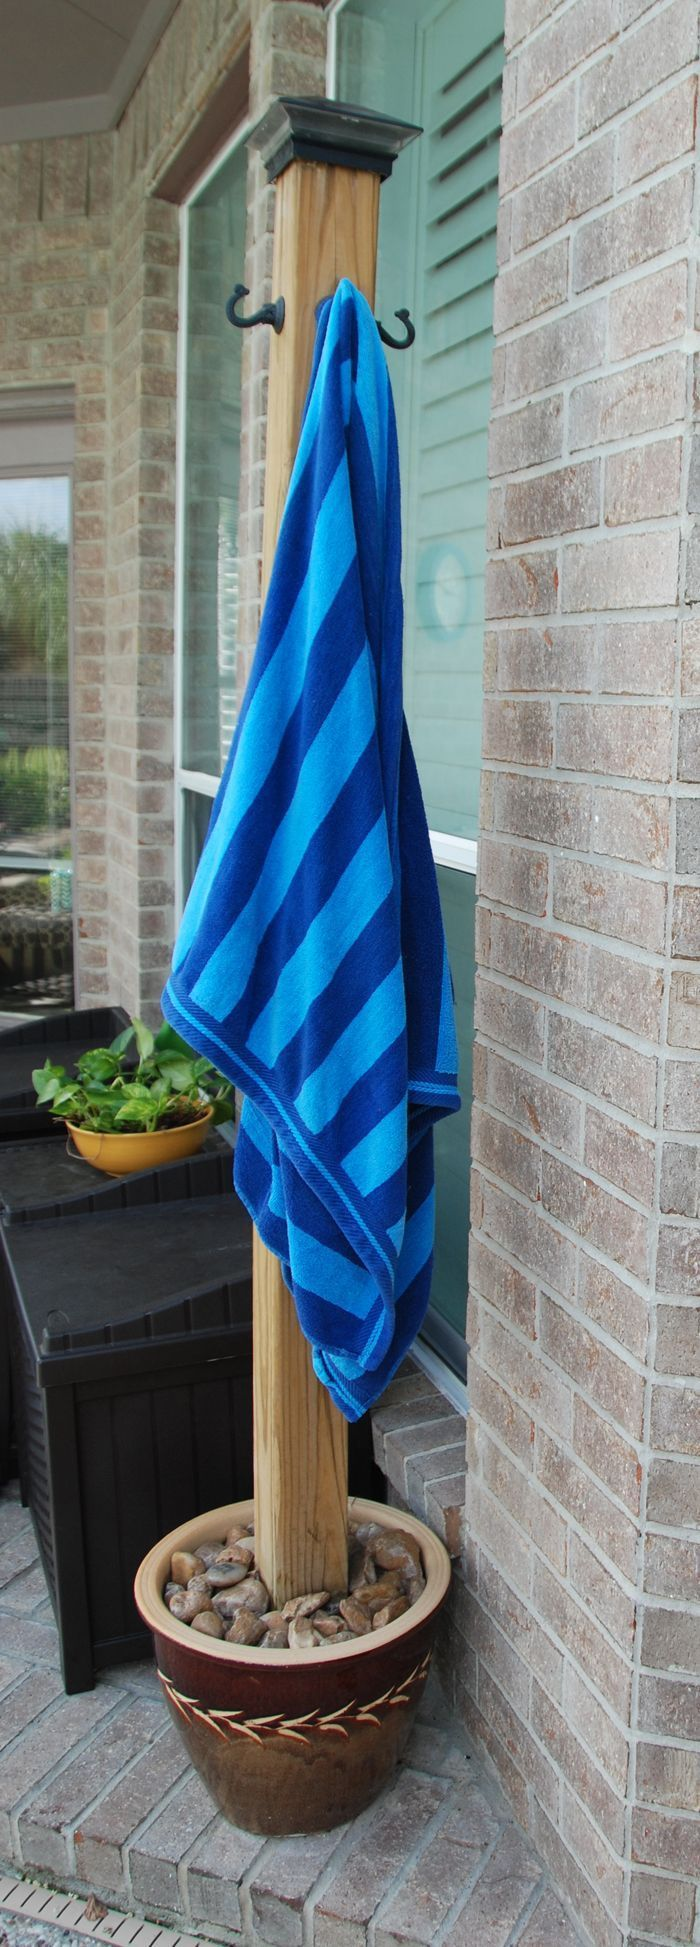 Best 25 lanai decorating ideas on pinterest backyard for Outdoor towel caddy